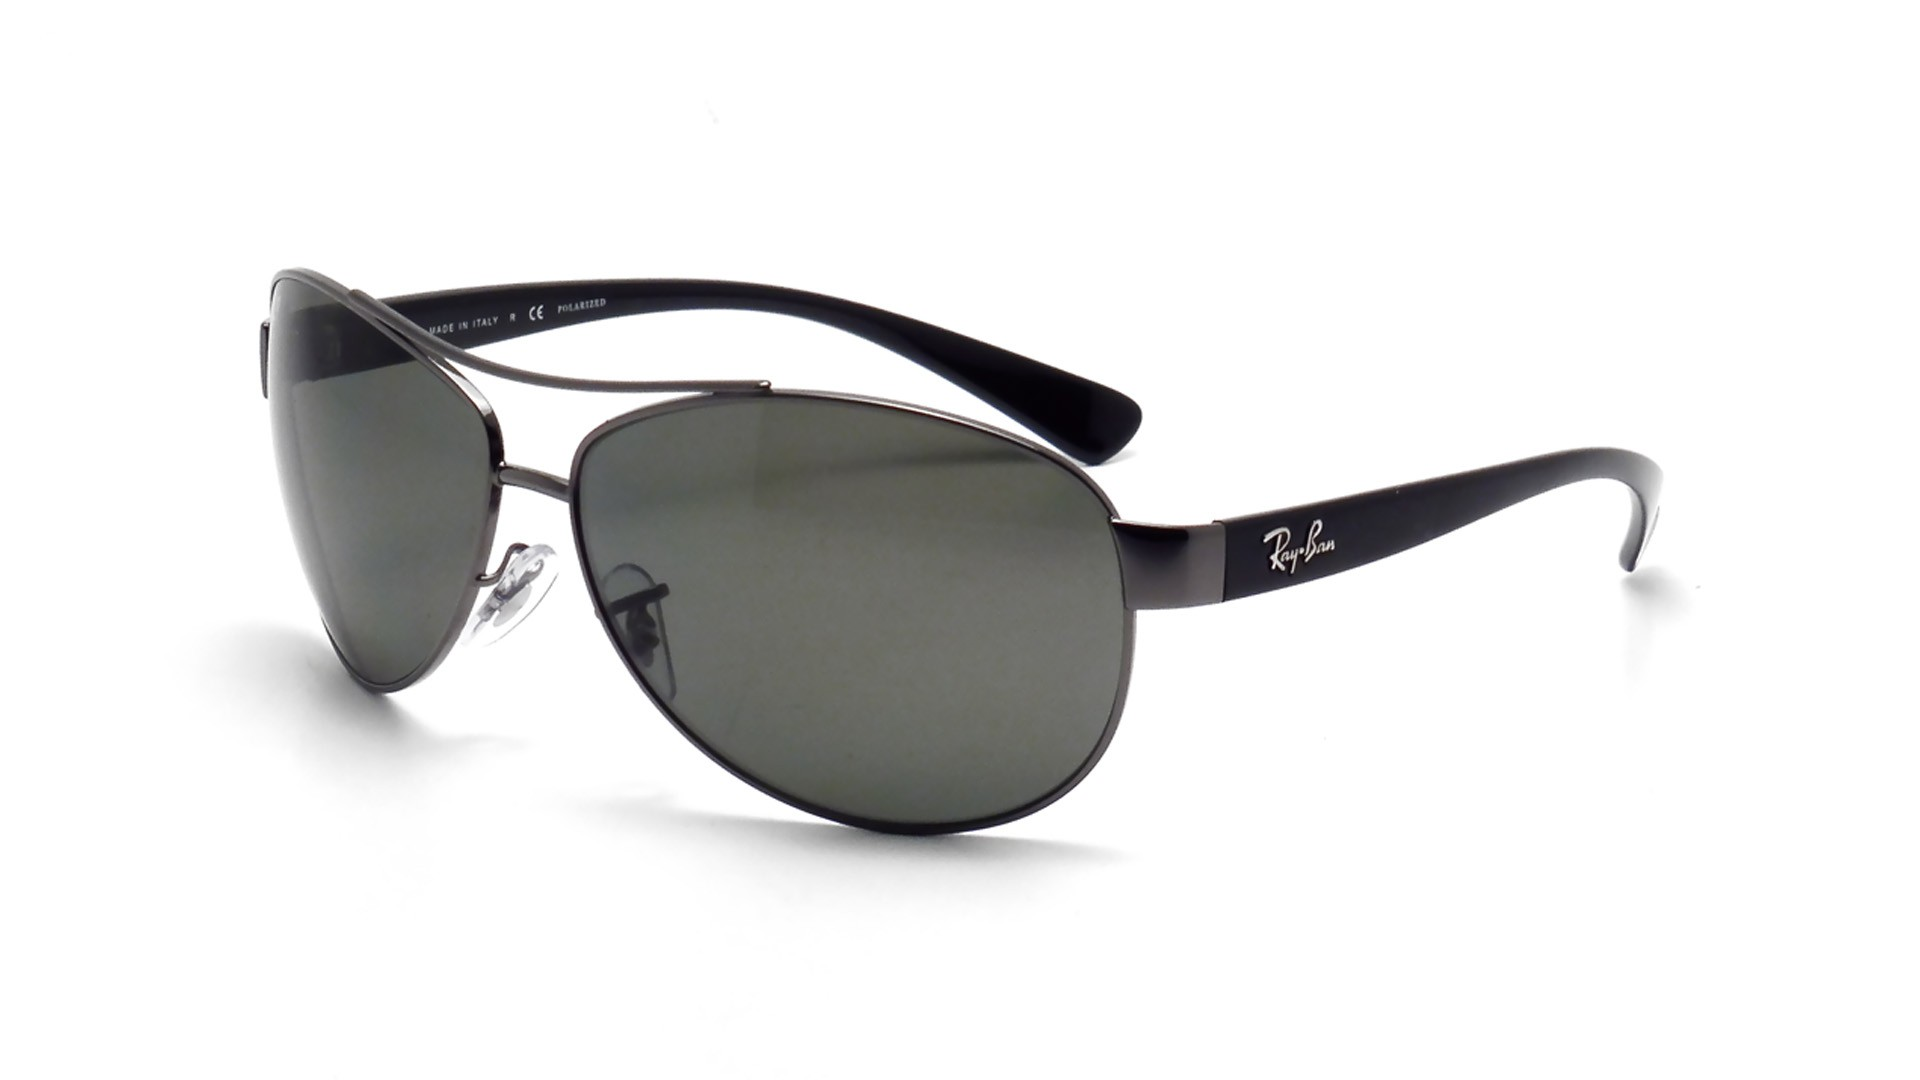 0672f271d95 Sunglasses Ray-Ban RB3386 004 9A 67-13 Silver Large Polarized